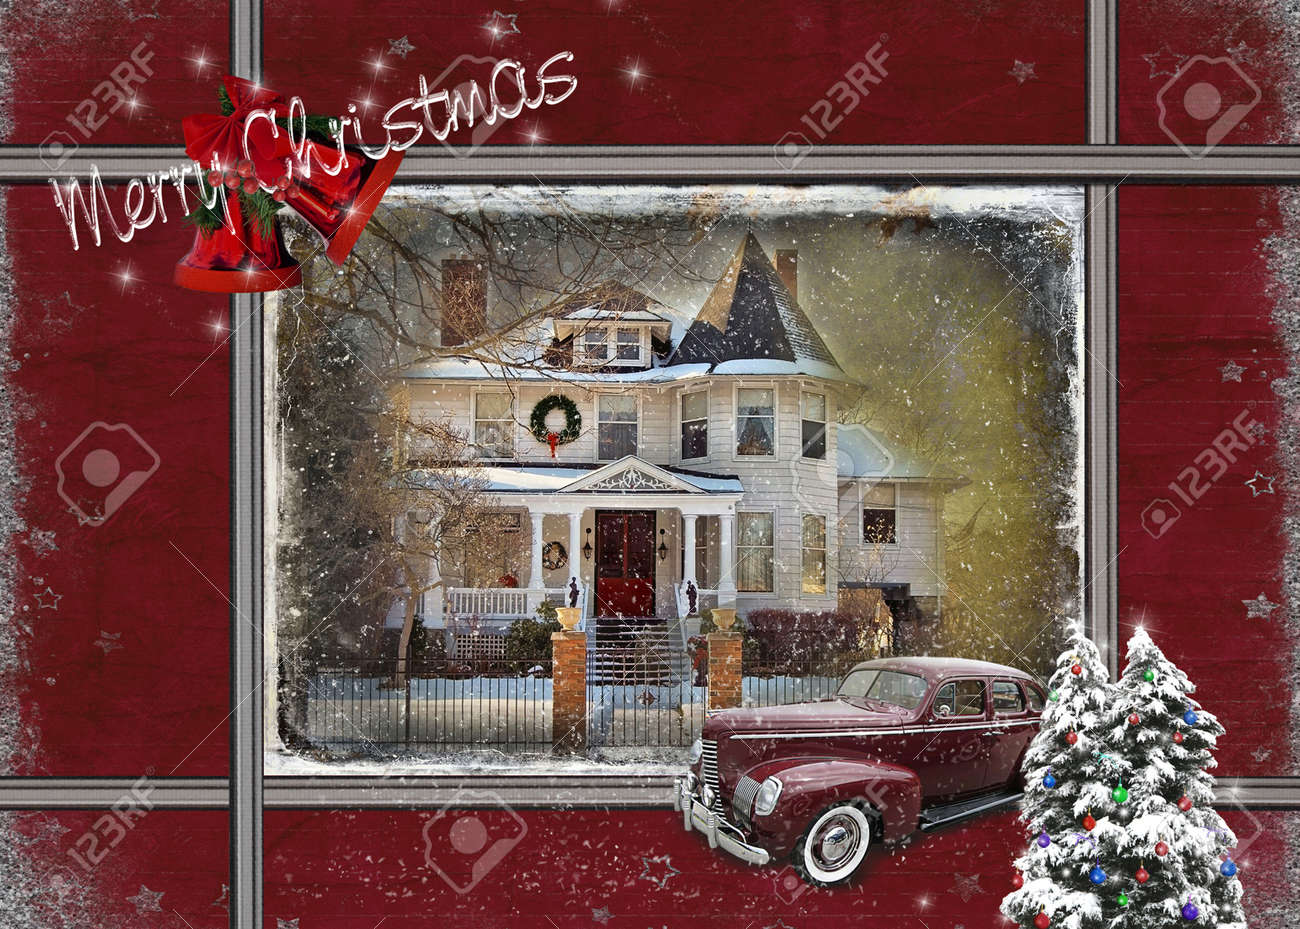 vintage house with car at Christmas time Stock Photo - 16012684